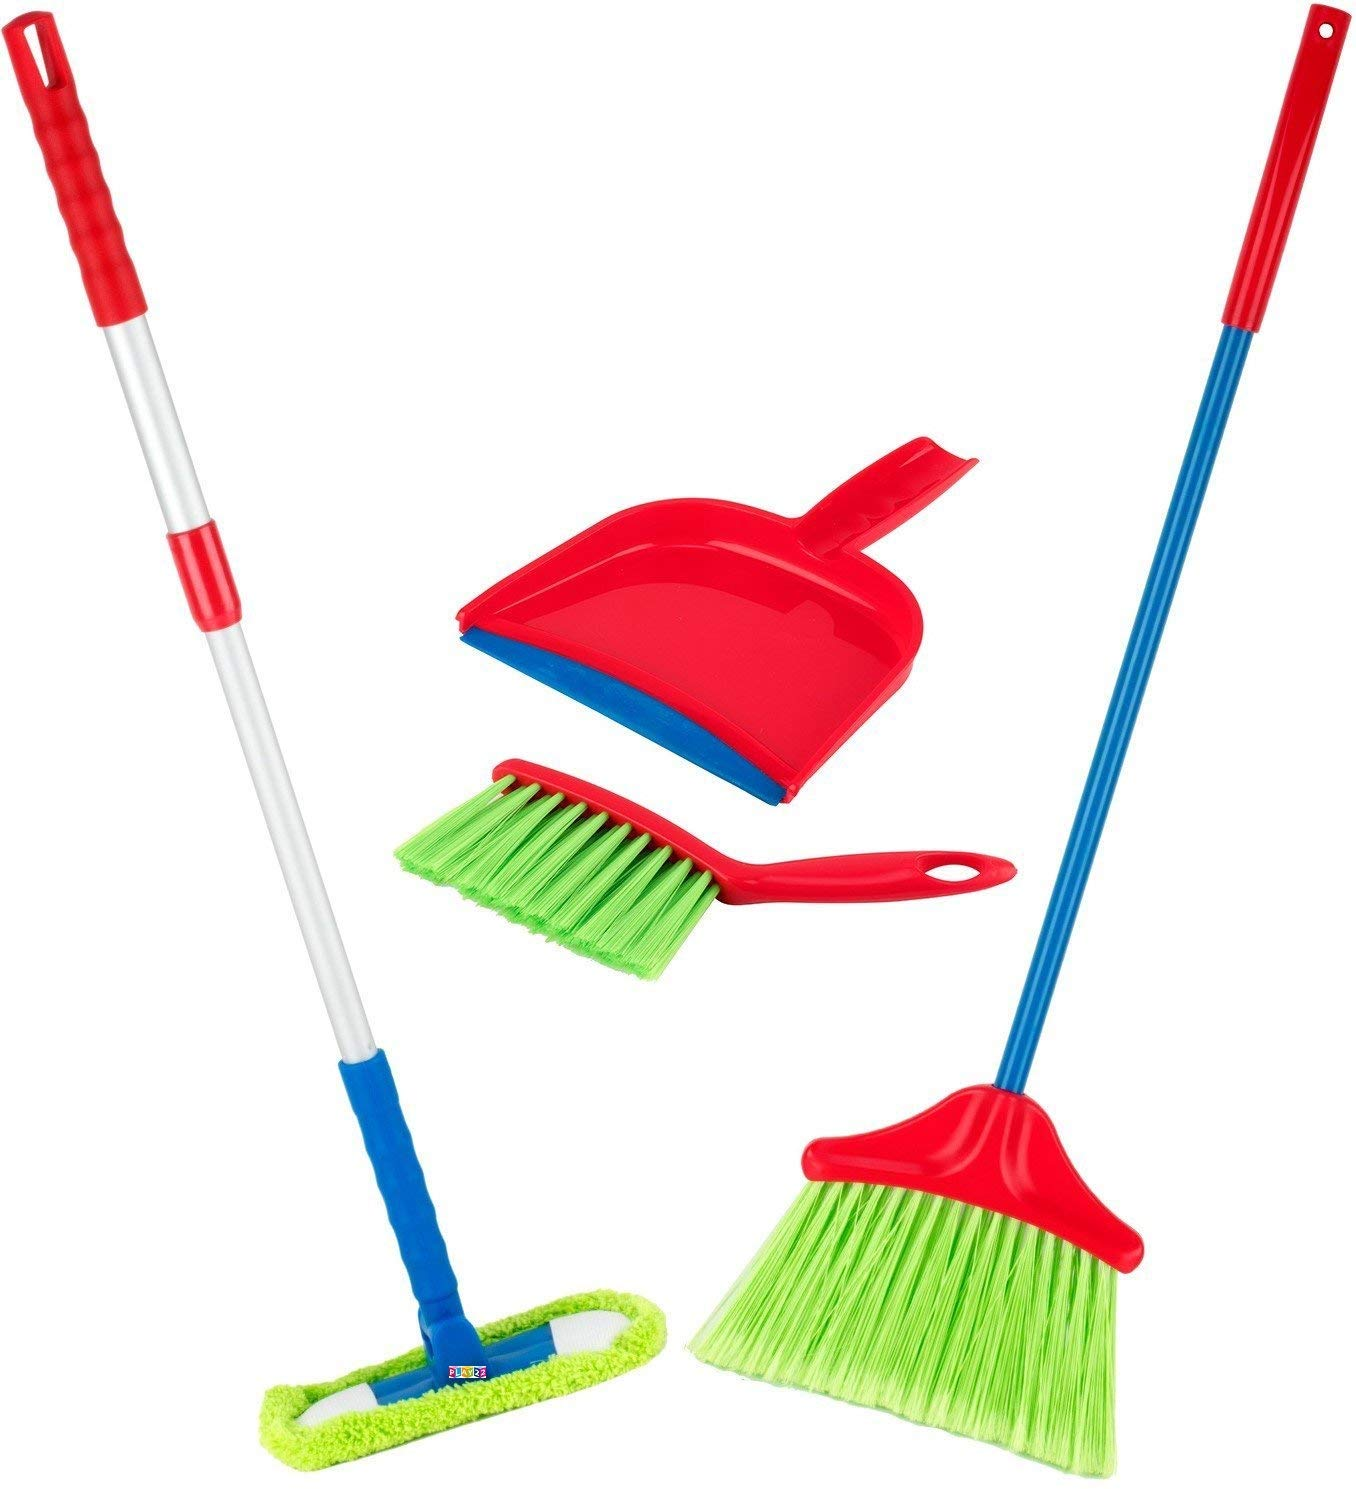 Play22 Kids Cleaning Set 4 Piece - Toy Cleaning Set Includes Broom, Mop, Brush, Dust Pan, - Toy Kitchen Toddler Cleaning Set is A Great Toy Gift for Boys & Girls - Original